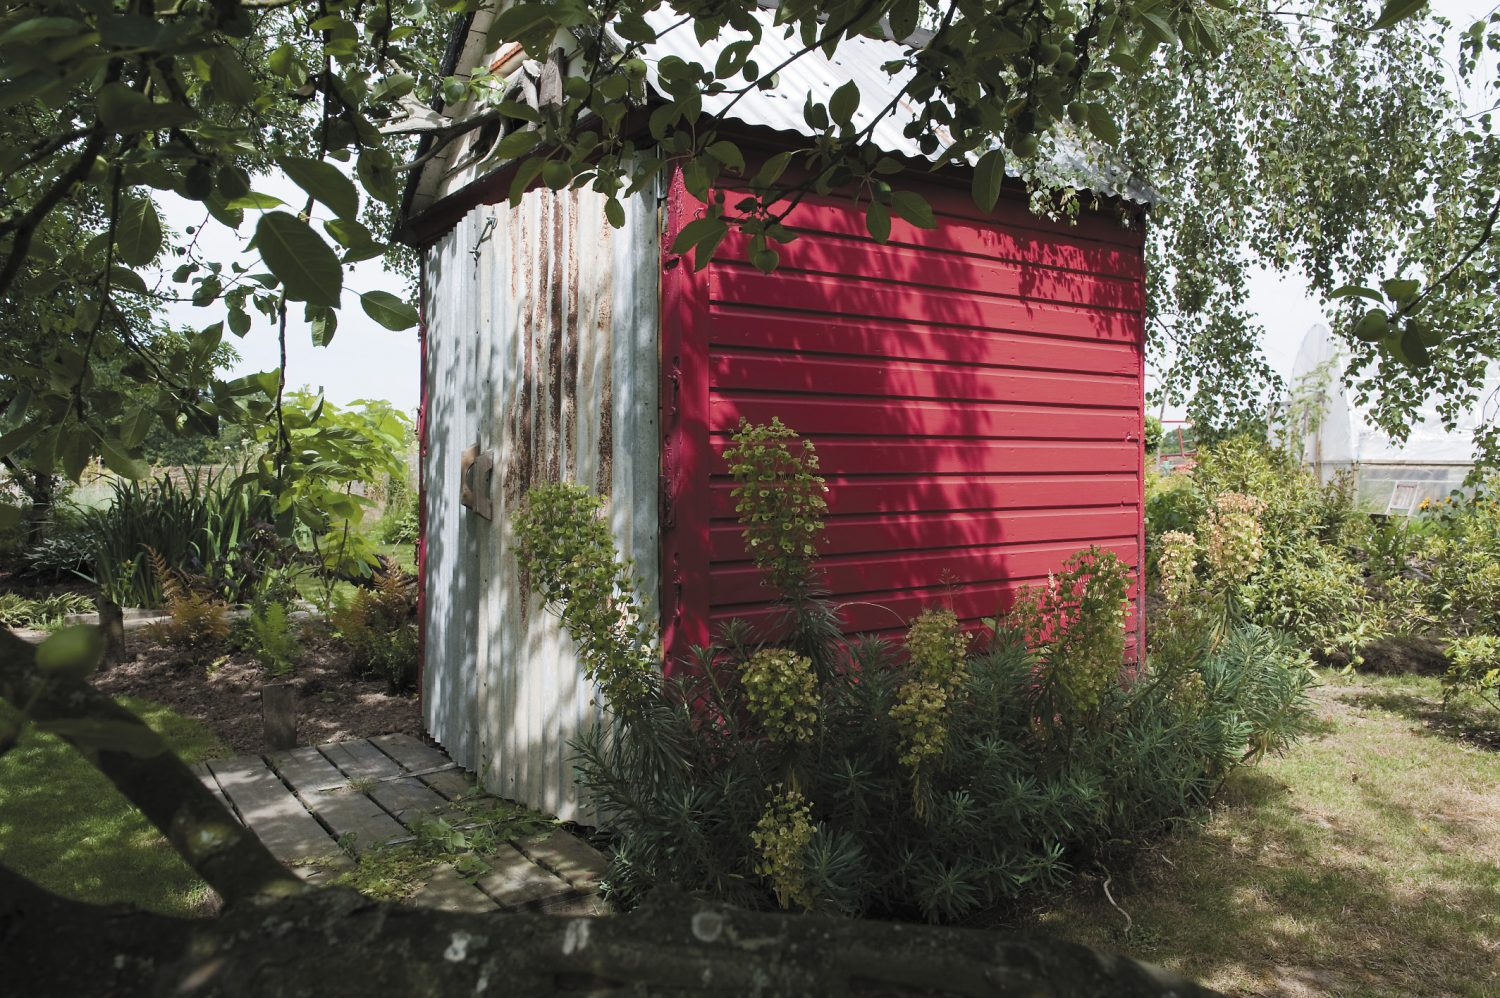 The crimson former beach hut, that belonged to Lizzie's father, adds a pleasing pop of colour amongst the garden foliage